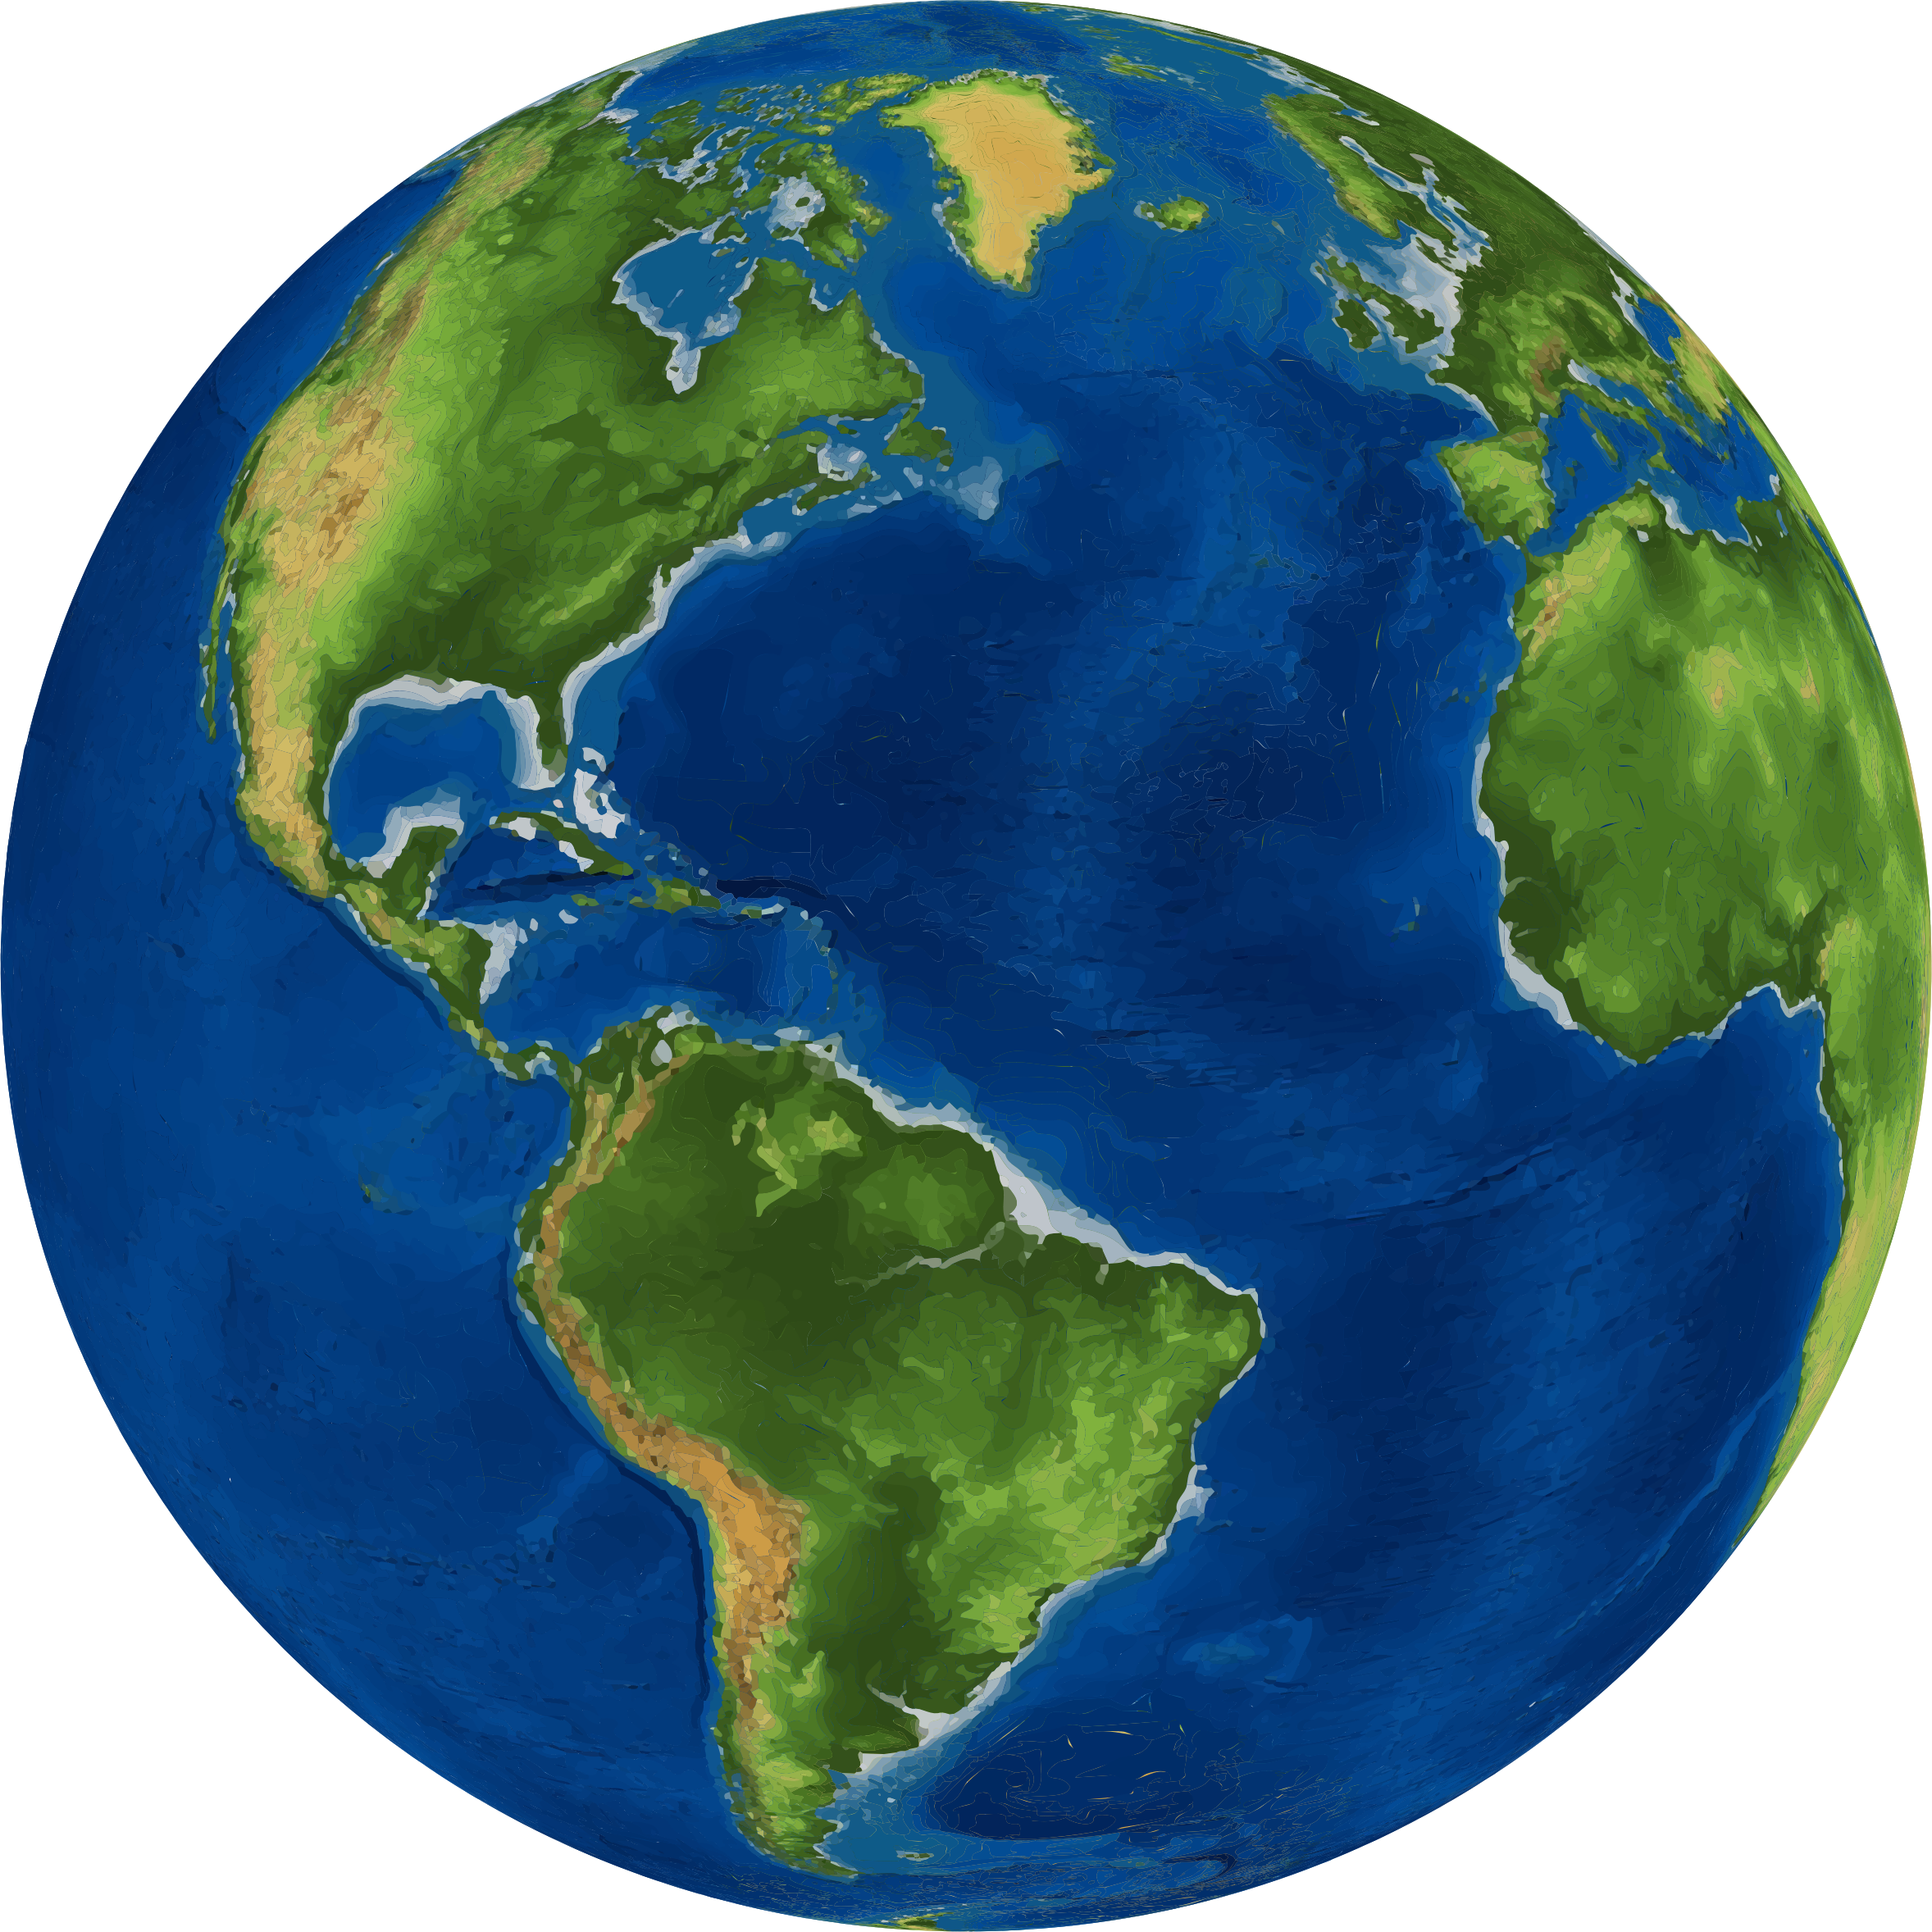 Season clipart season earth. D globe big image